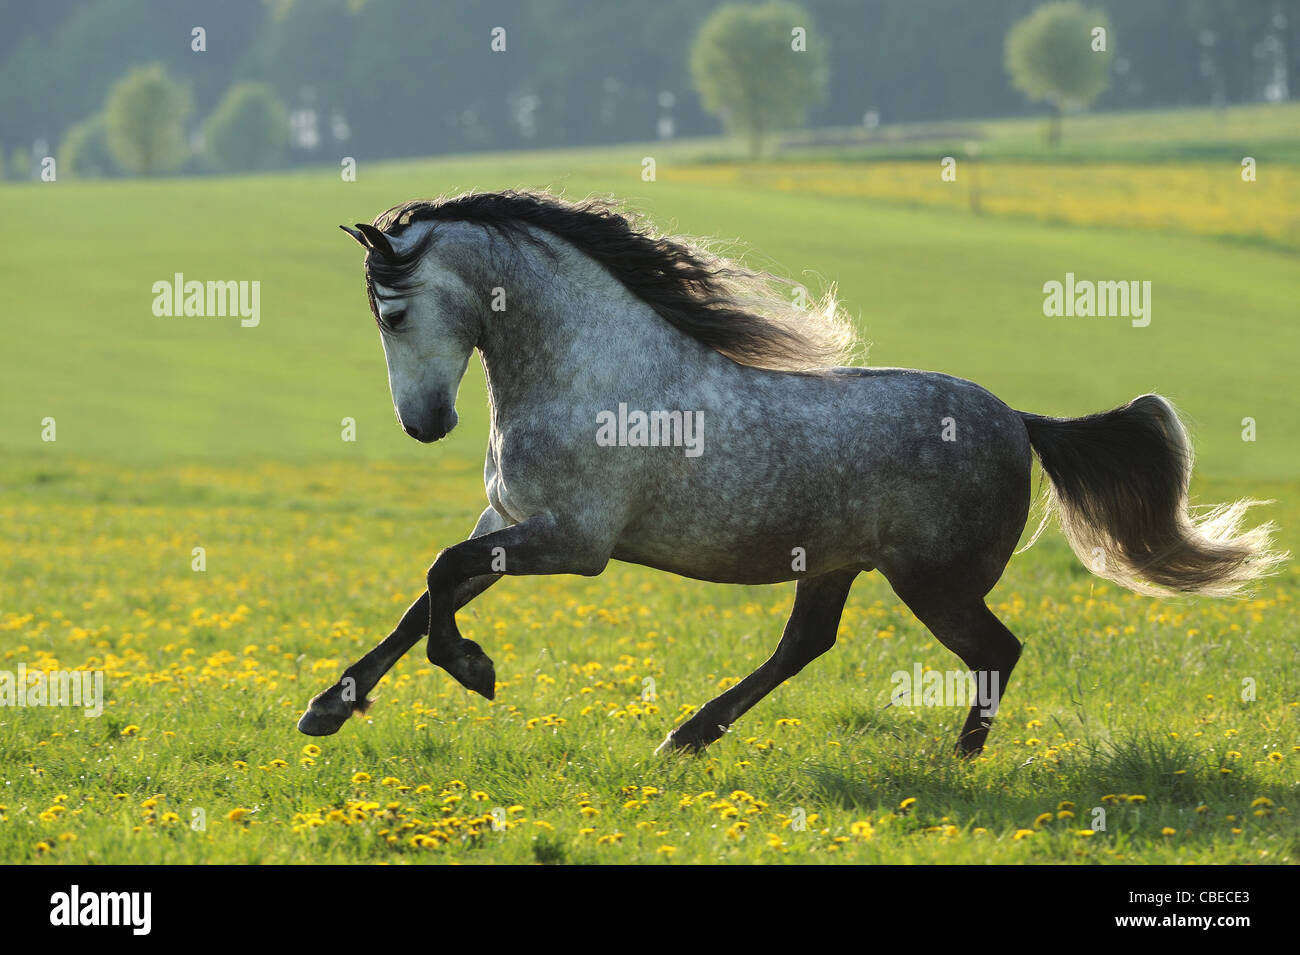 Andalusian Horse (Equus ferus caballus). Dapple gray gelding in a gallop on a meadow. - Stock Image